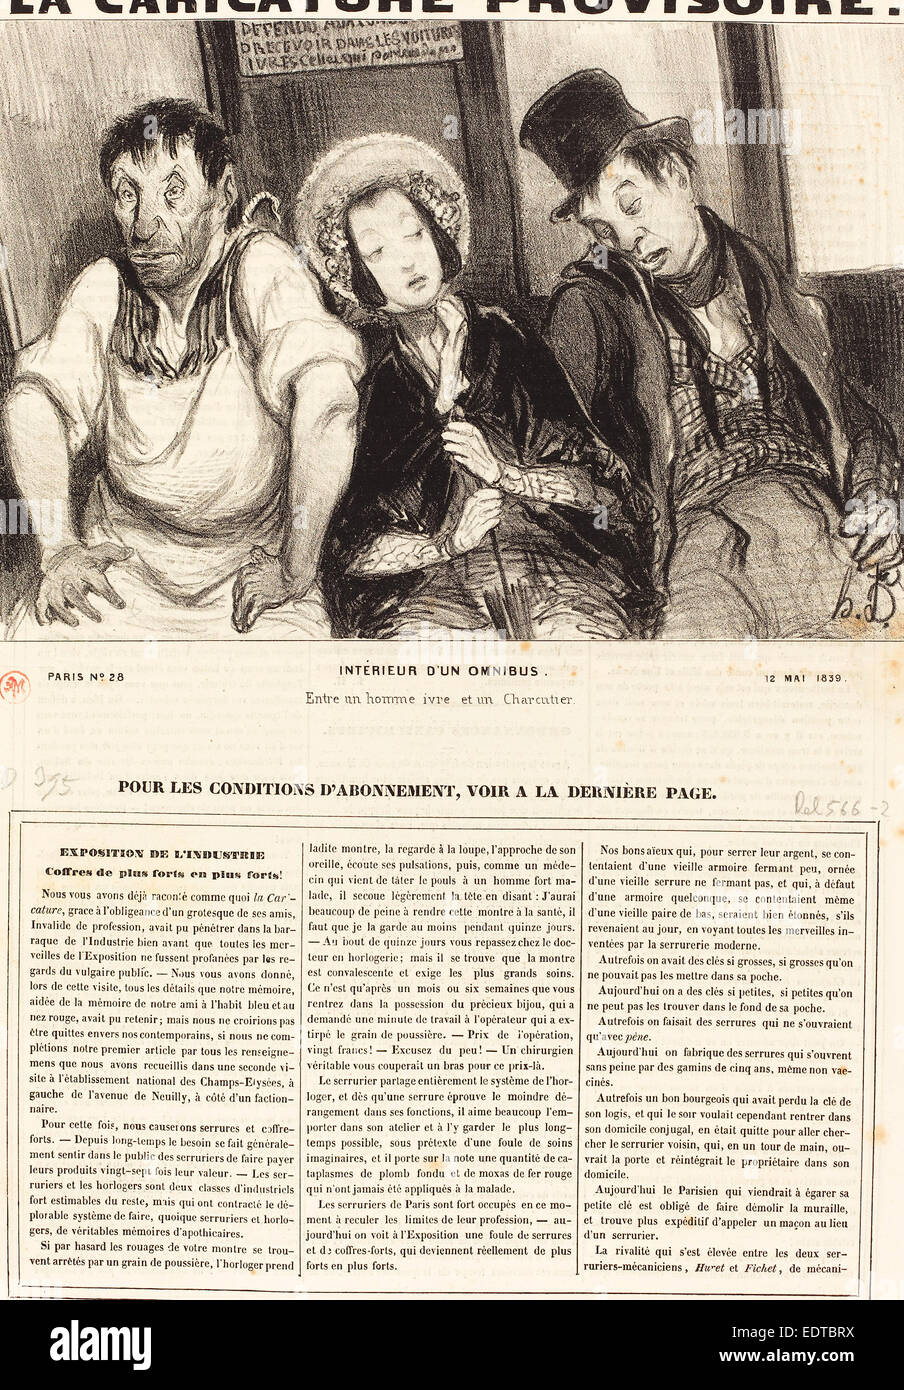 Honoré Daumier (French, 1808 - 1879), Intérieur d'un omnibus, 1839, lithograph on newsprint - Stock Image